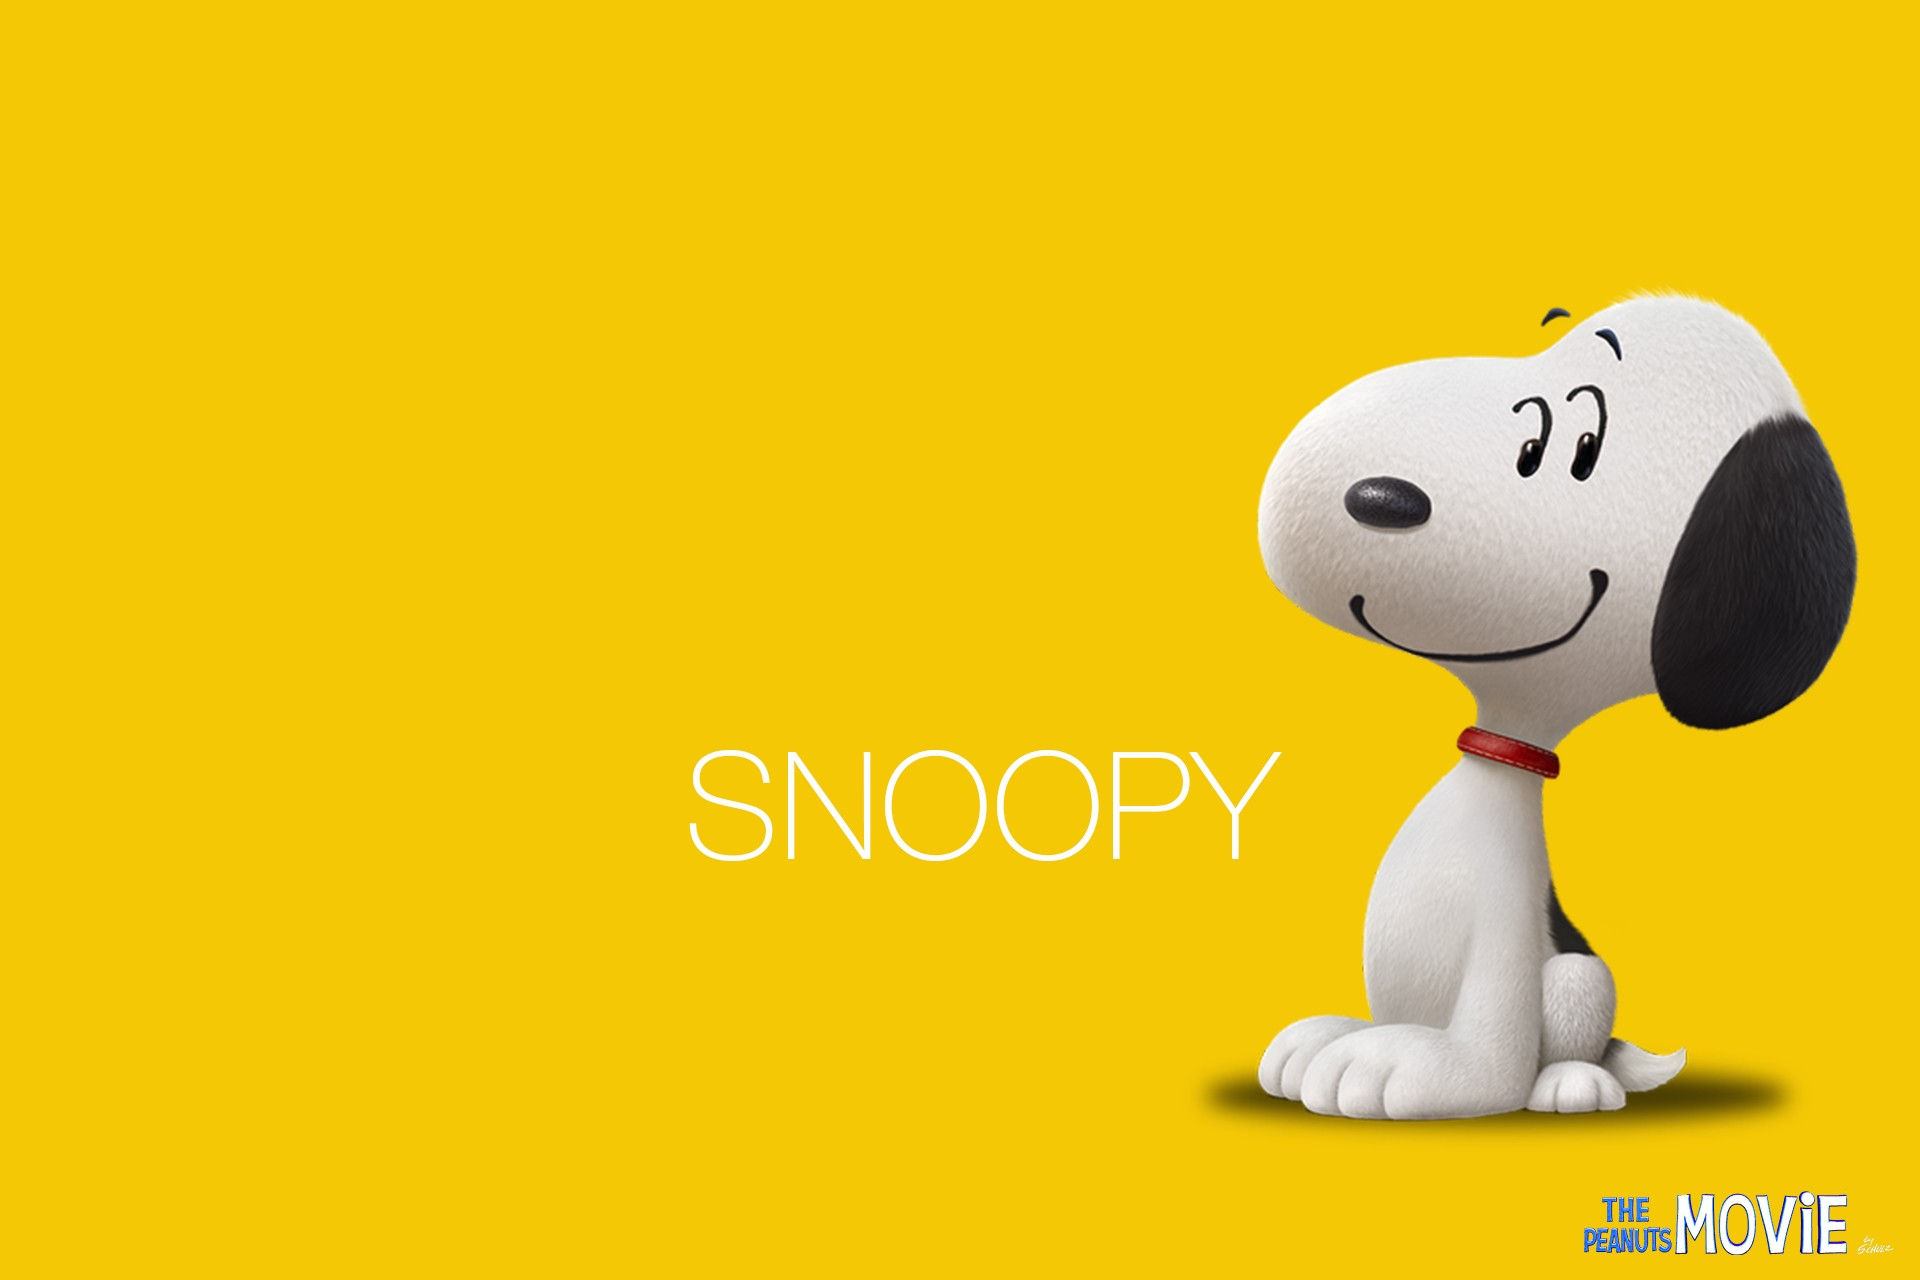 Fall Wallpaper For Android Phone Snoopy Wallpaper 183 ① Download Free High Resolution